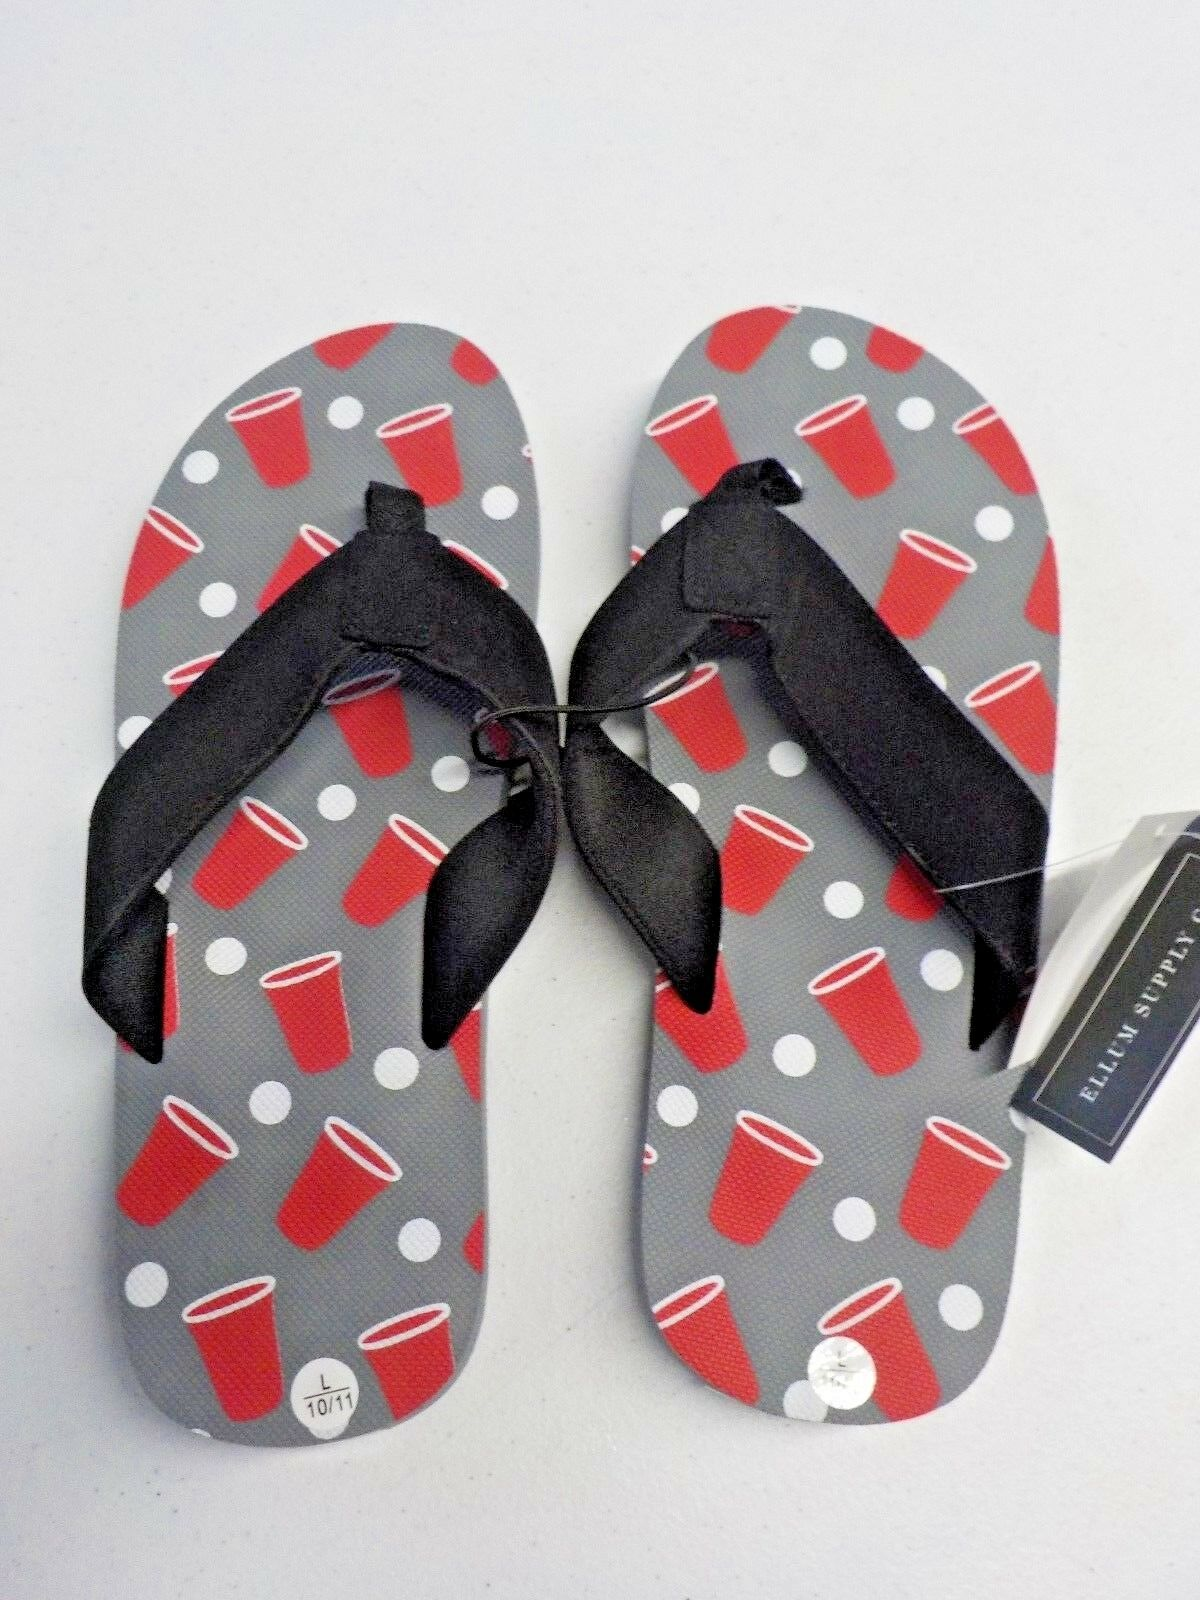 MEN'S SIZE 10/11 ELLUM SUPPLY FLIP CO. BEER PONG PRINT FLIP SUPPLY FLOPS NEW NWT 652d98